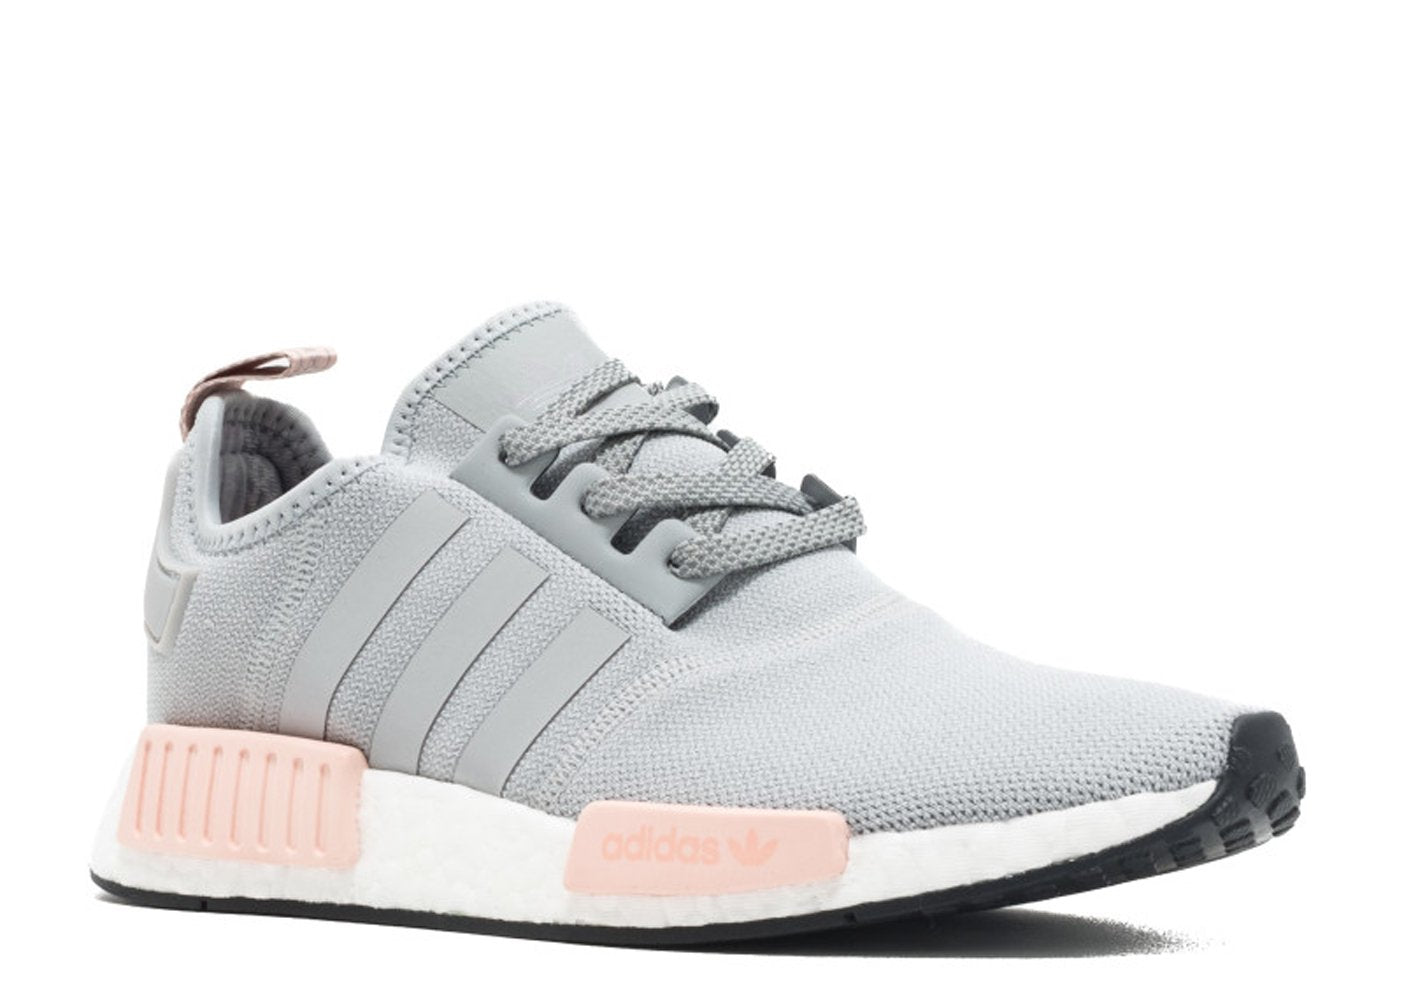 KEEVIN Adidas NMD r1 raw gray pink women s casual shoes – Keevin store a632b897c0